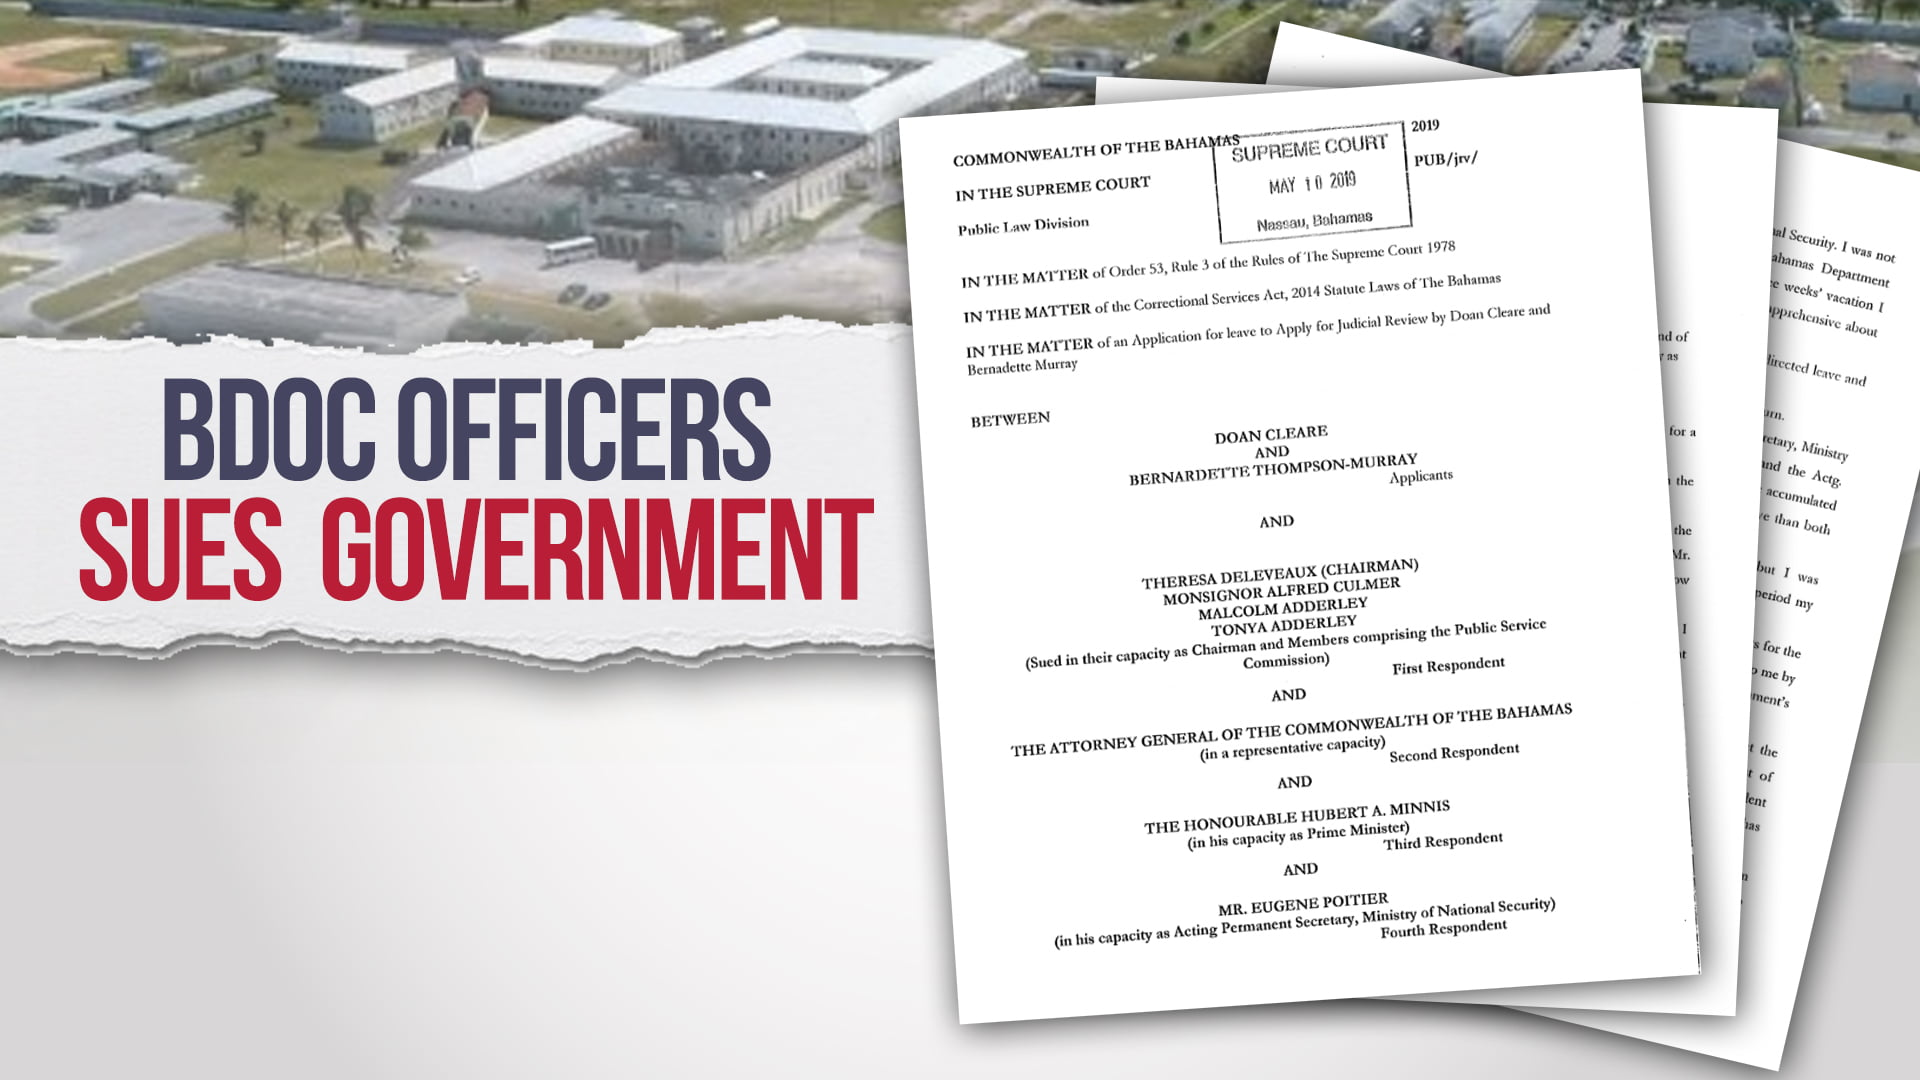 BDOCS employees file affidavits to declare Murphy's appointment invalid